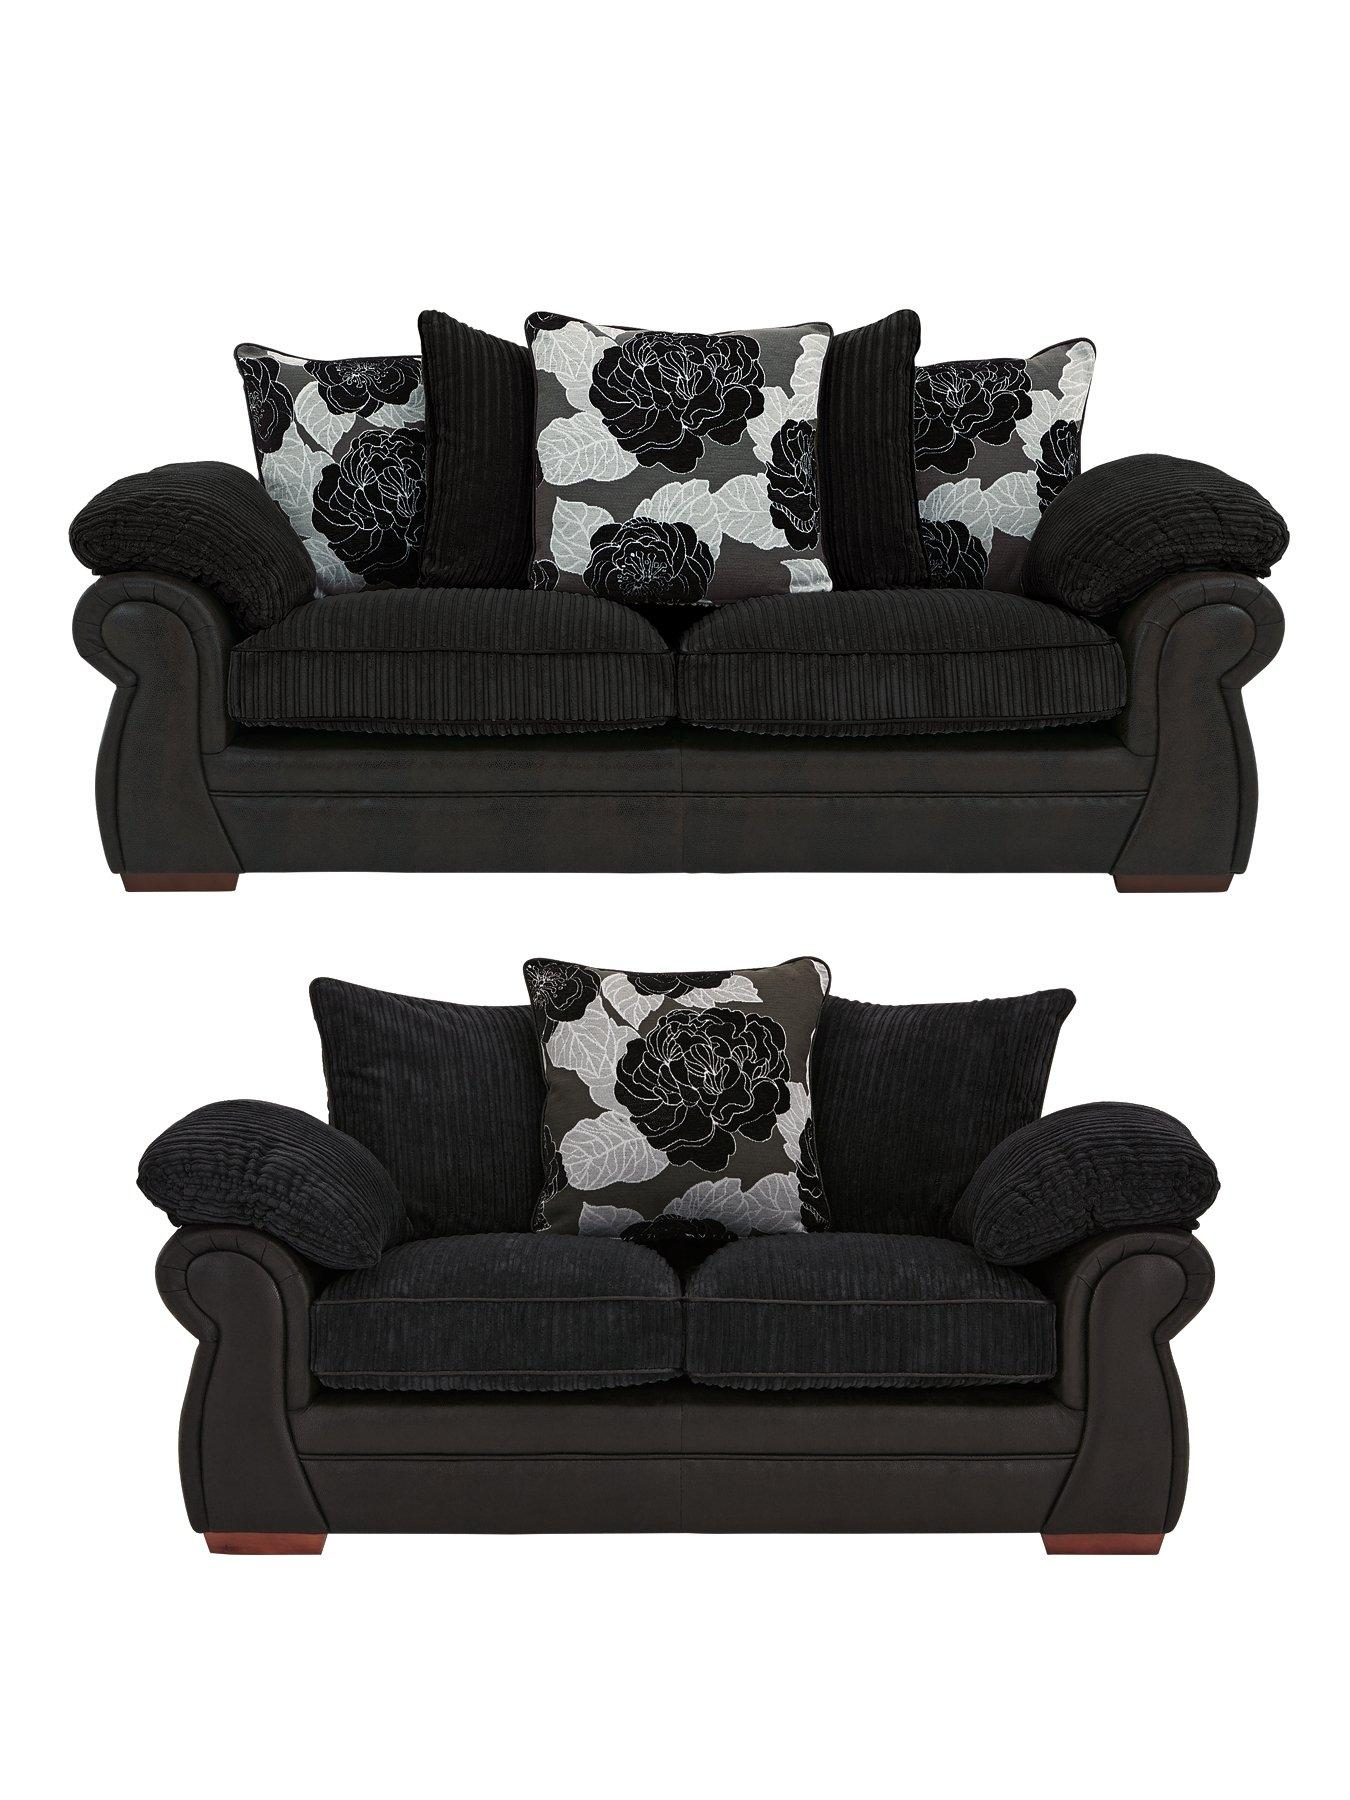 andorra 3seater plus 2seater sofa set buy and save